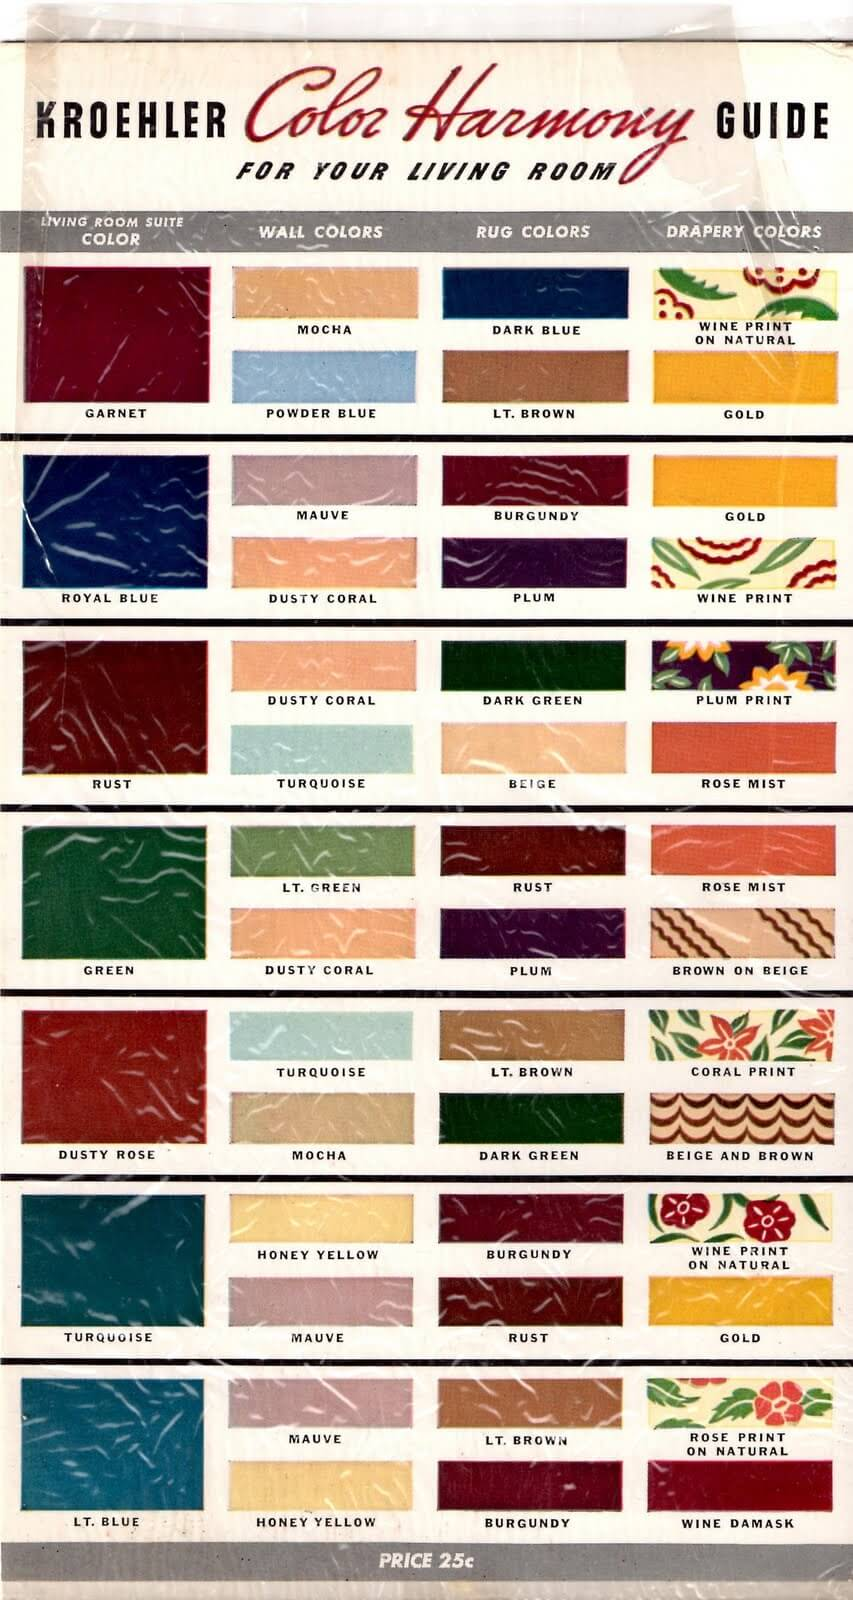 1940s color guide